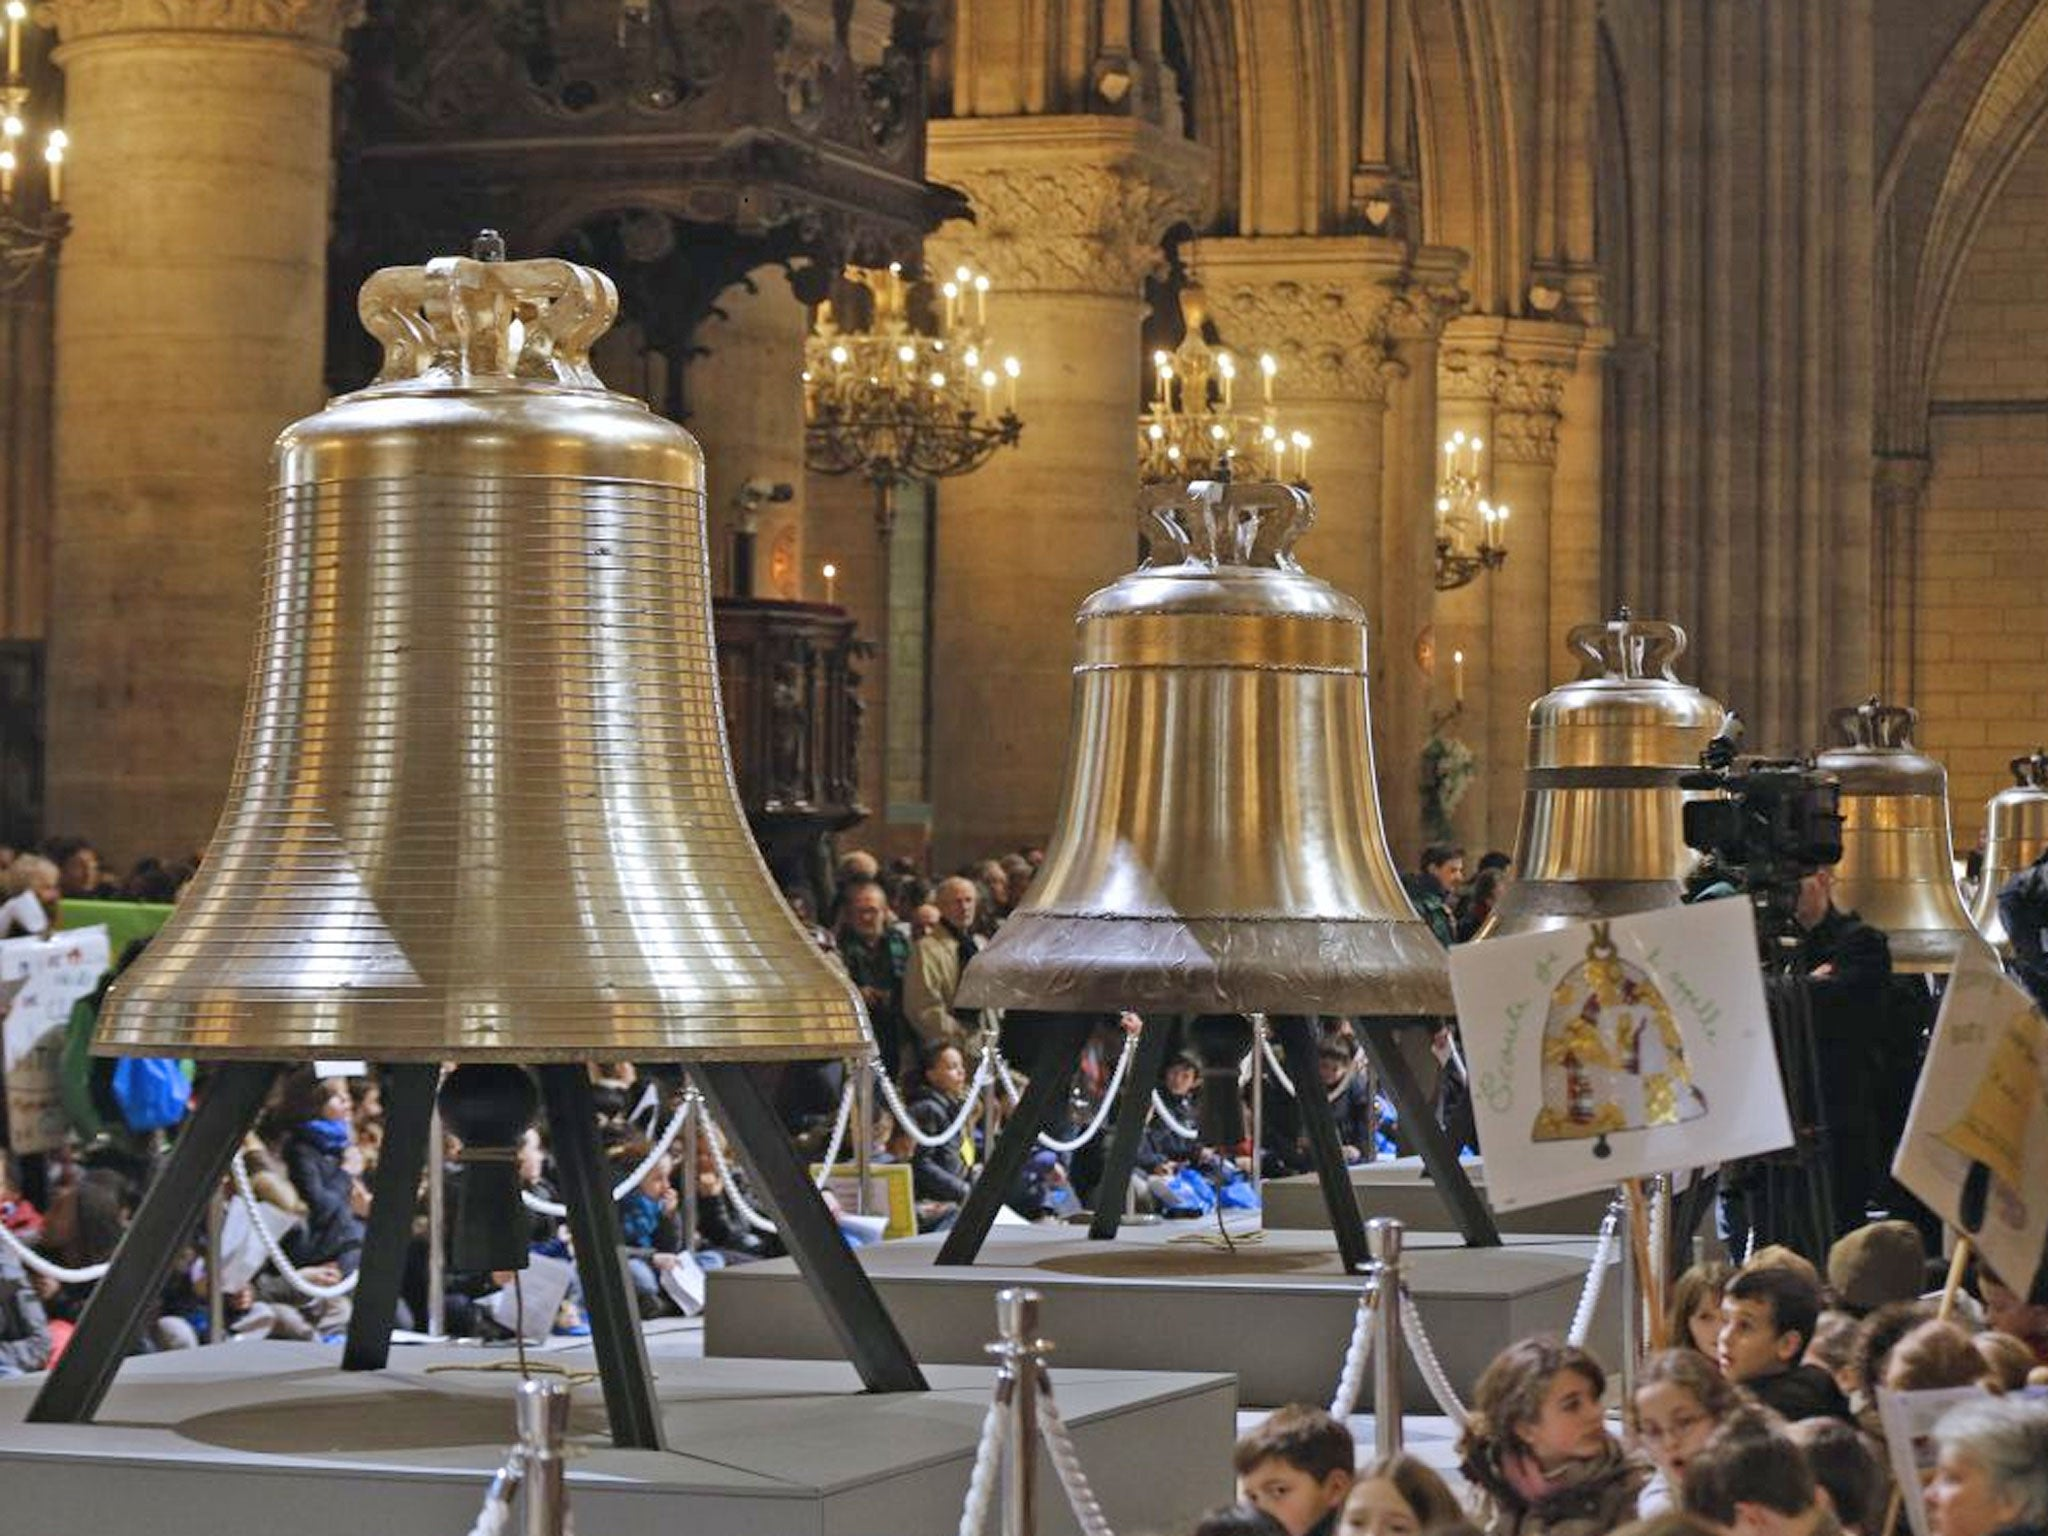 Two Centuries On The Bells Of Notre Dame Ring Again On